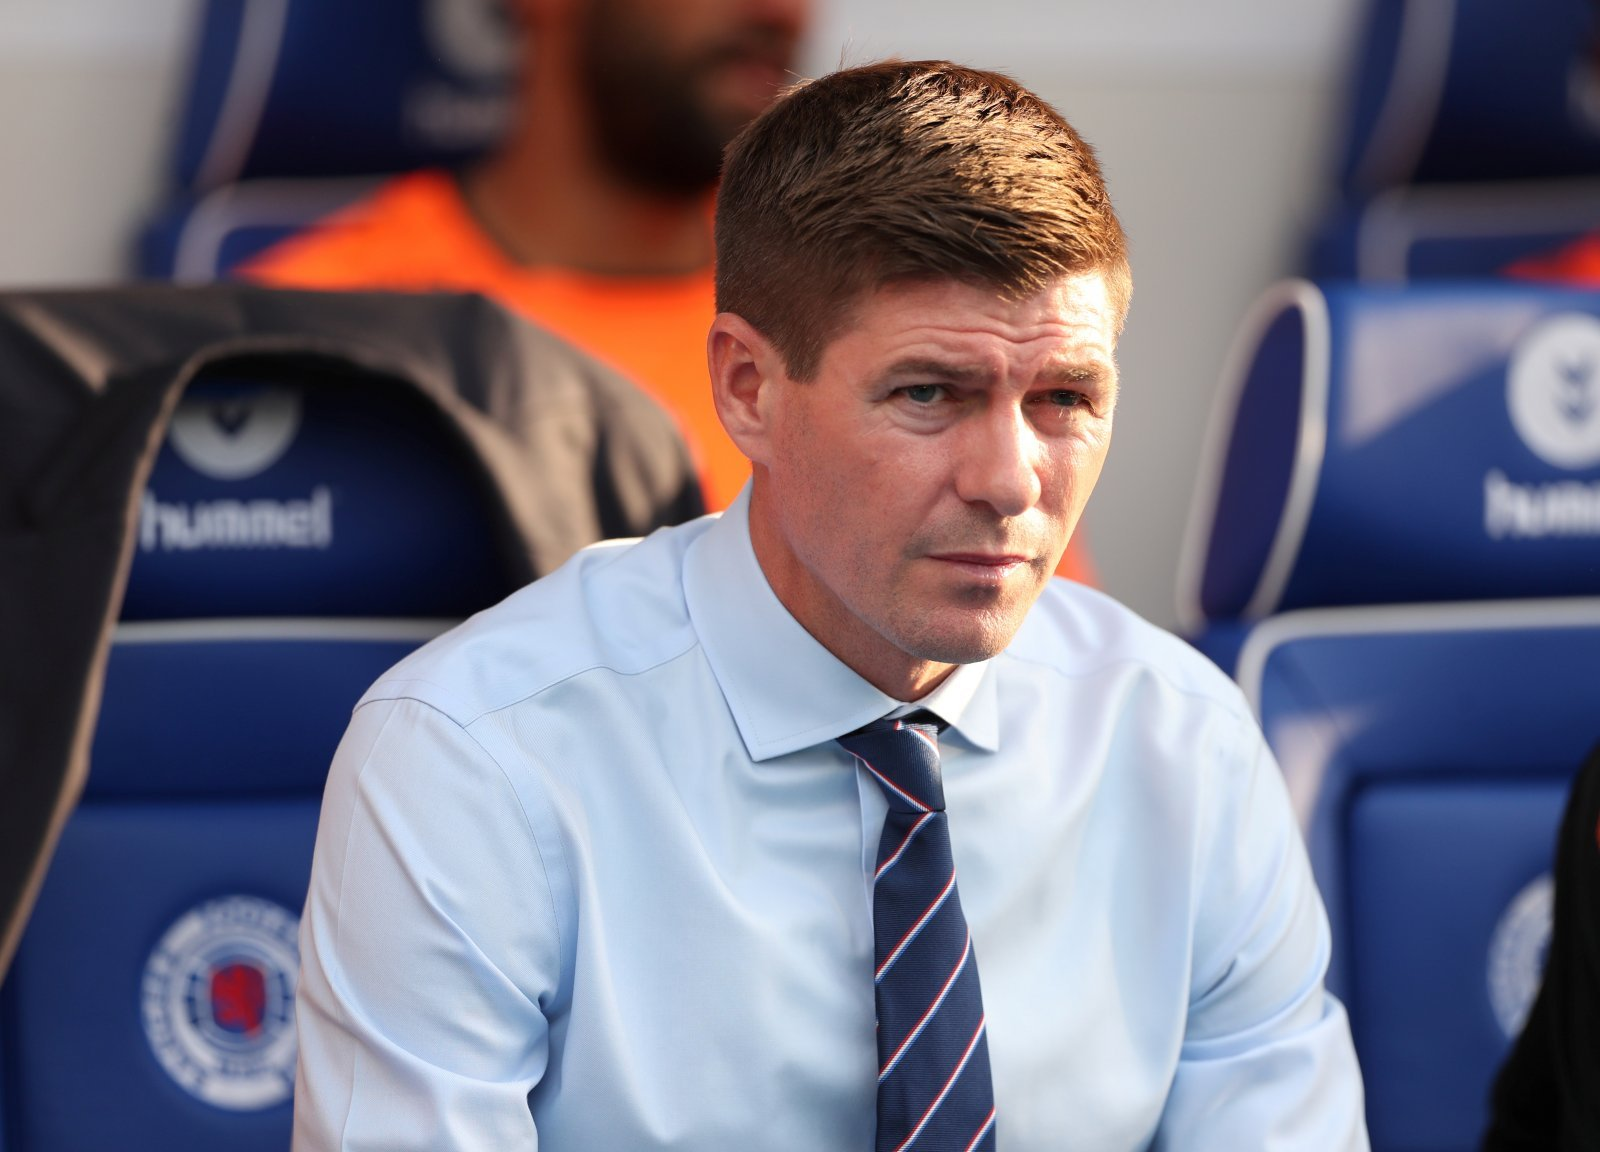 Rangers: Fans loved seeing Steven Gerrard play for Gers in charity match